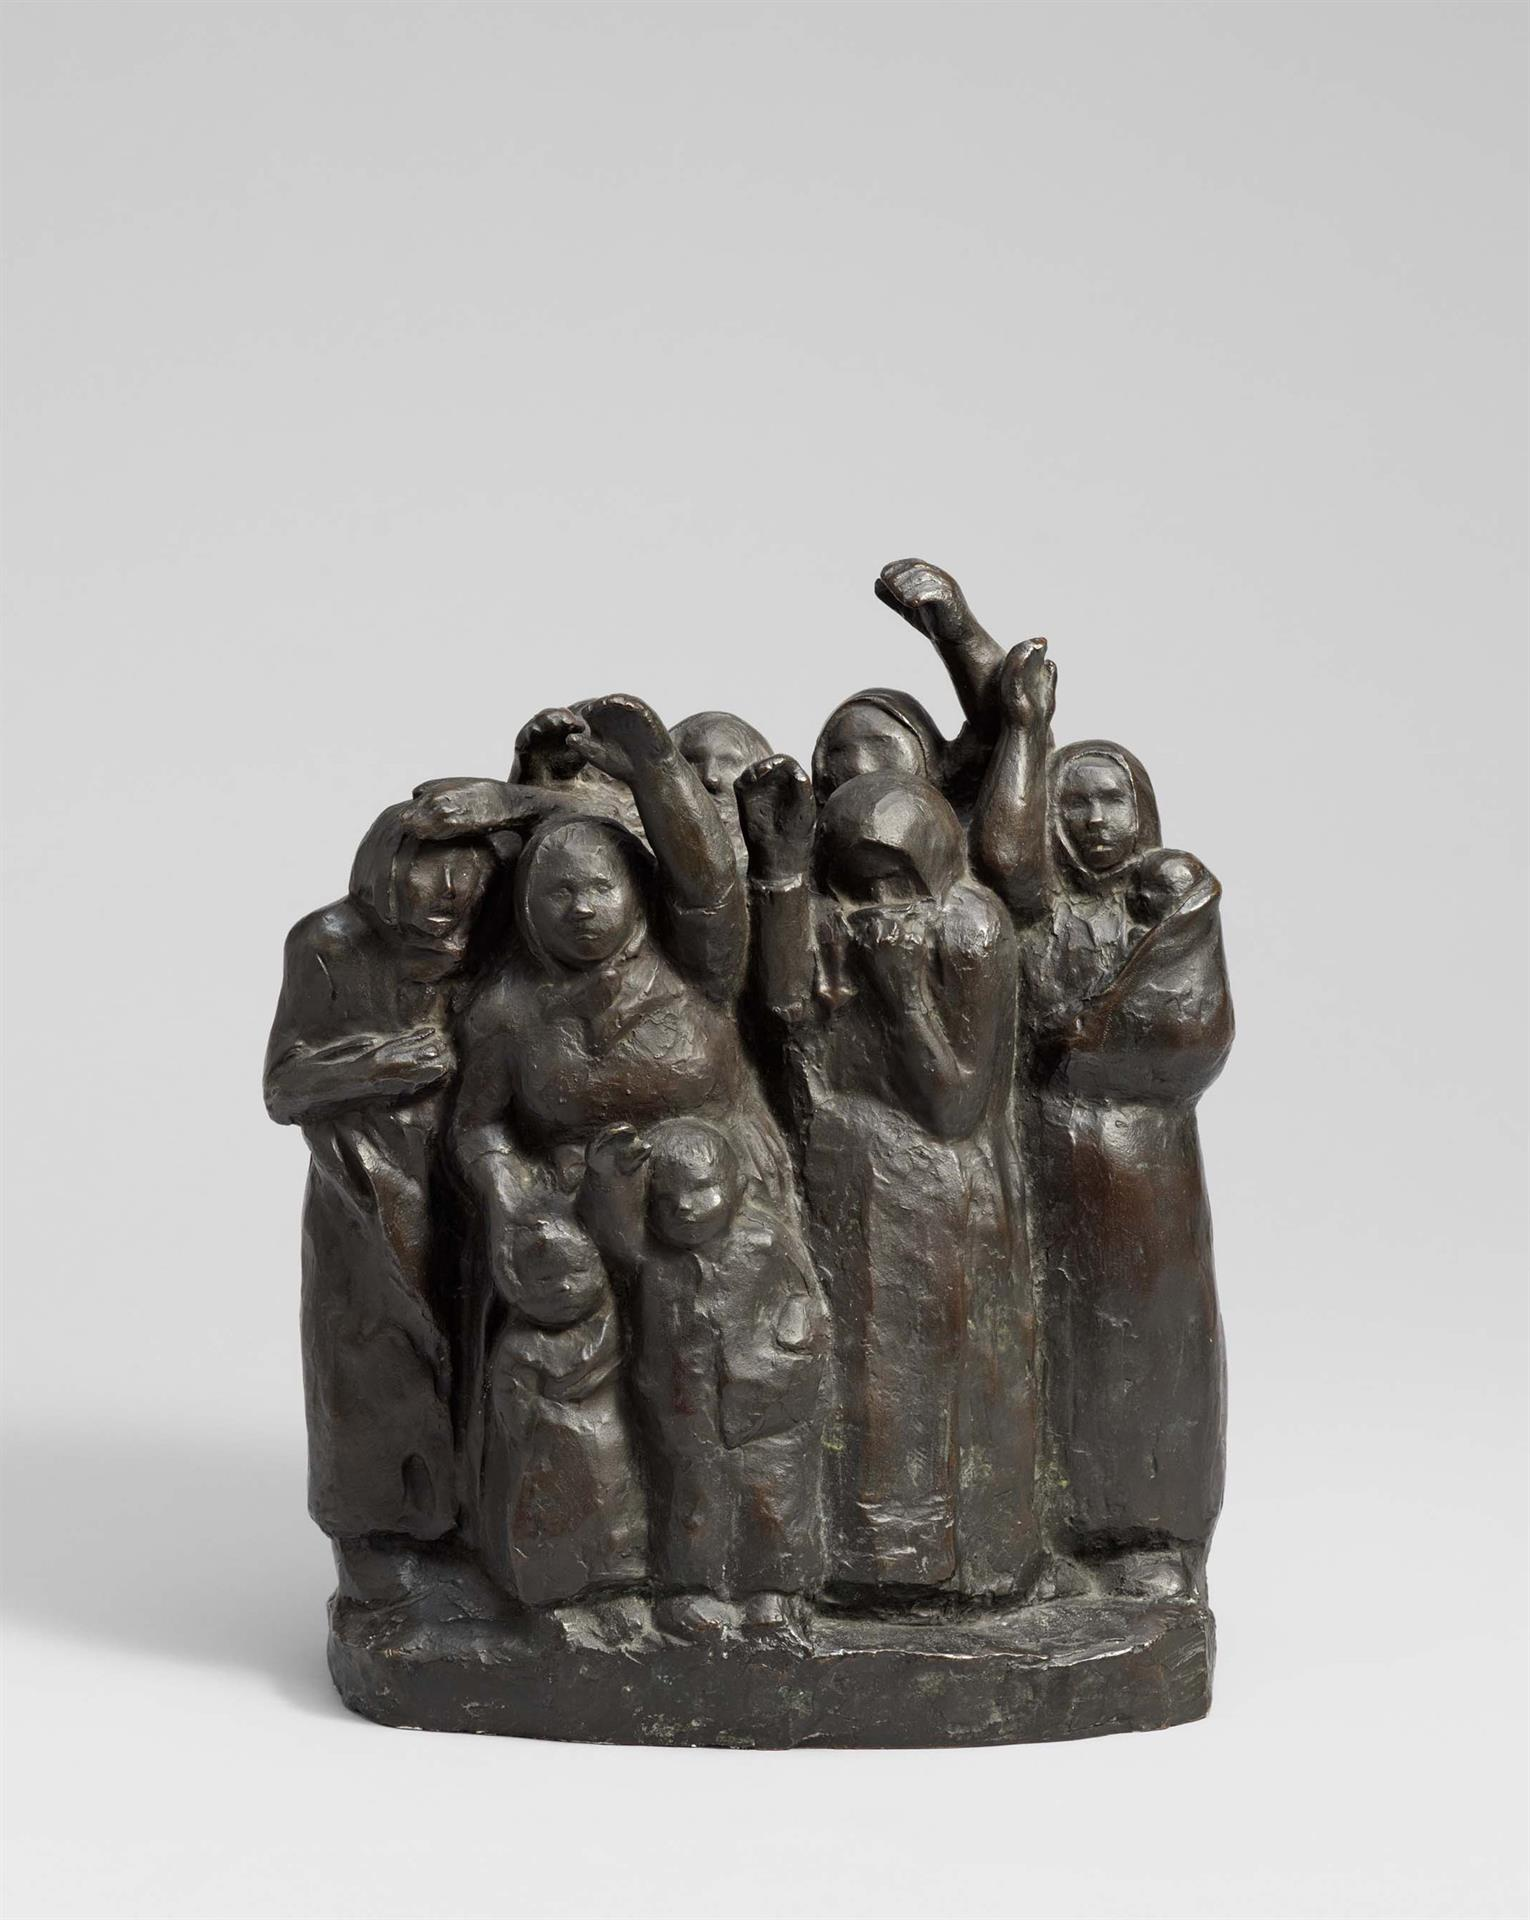 Käthe Kollwitz, Soldiers' Wives Waving Farewell, 2nd version, 1937/1938, bronze, Seeler 32 I.B.2., Cologne Kollwitz Collection © Käthe Kollwitz Museum Köln